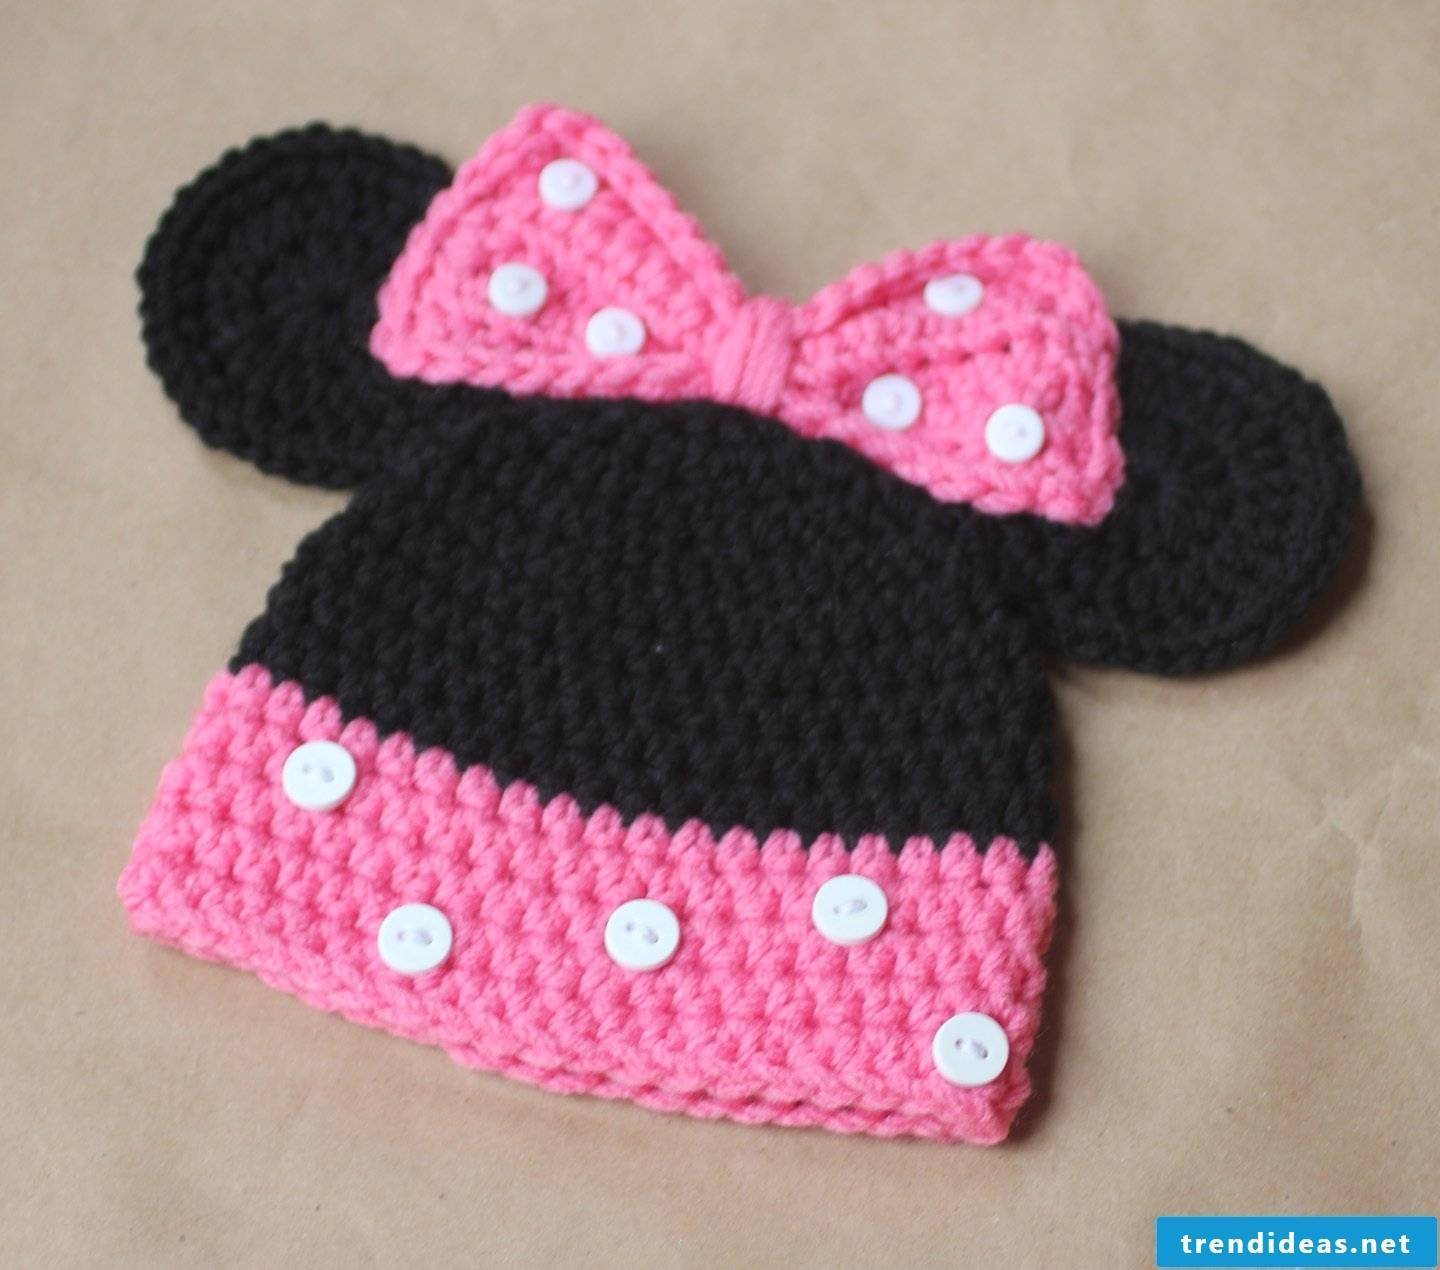 The Minnie beanie